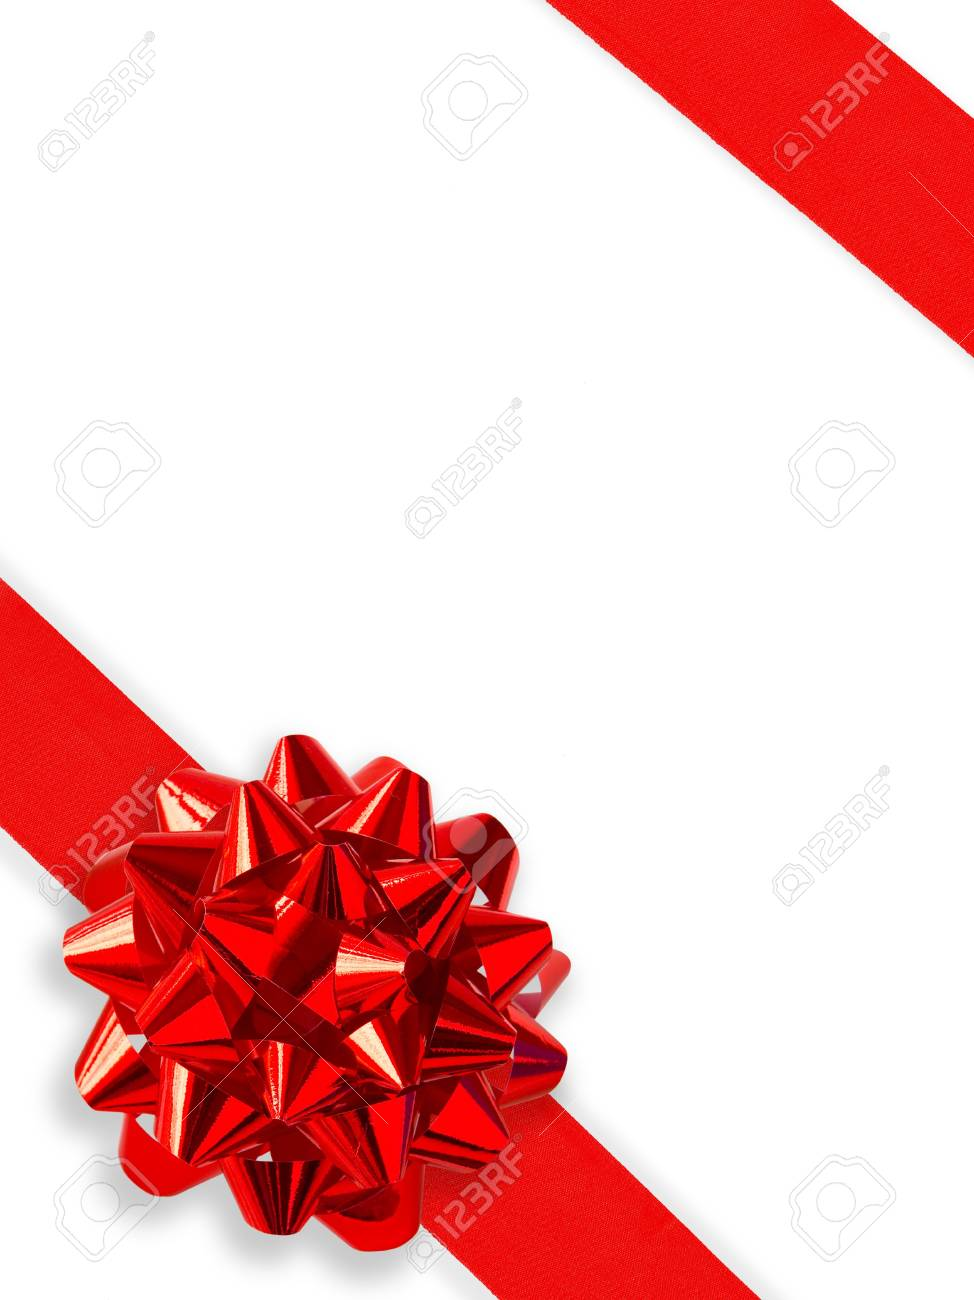 Red Gift Ribbon Over White (with clipping path for easy background removing) Stock Photo - 583870